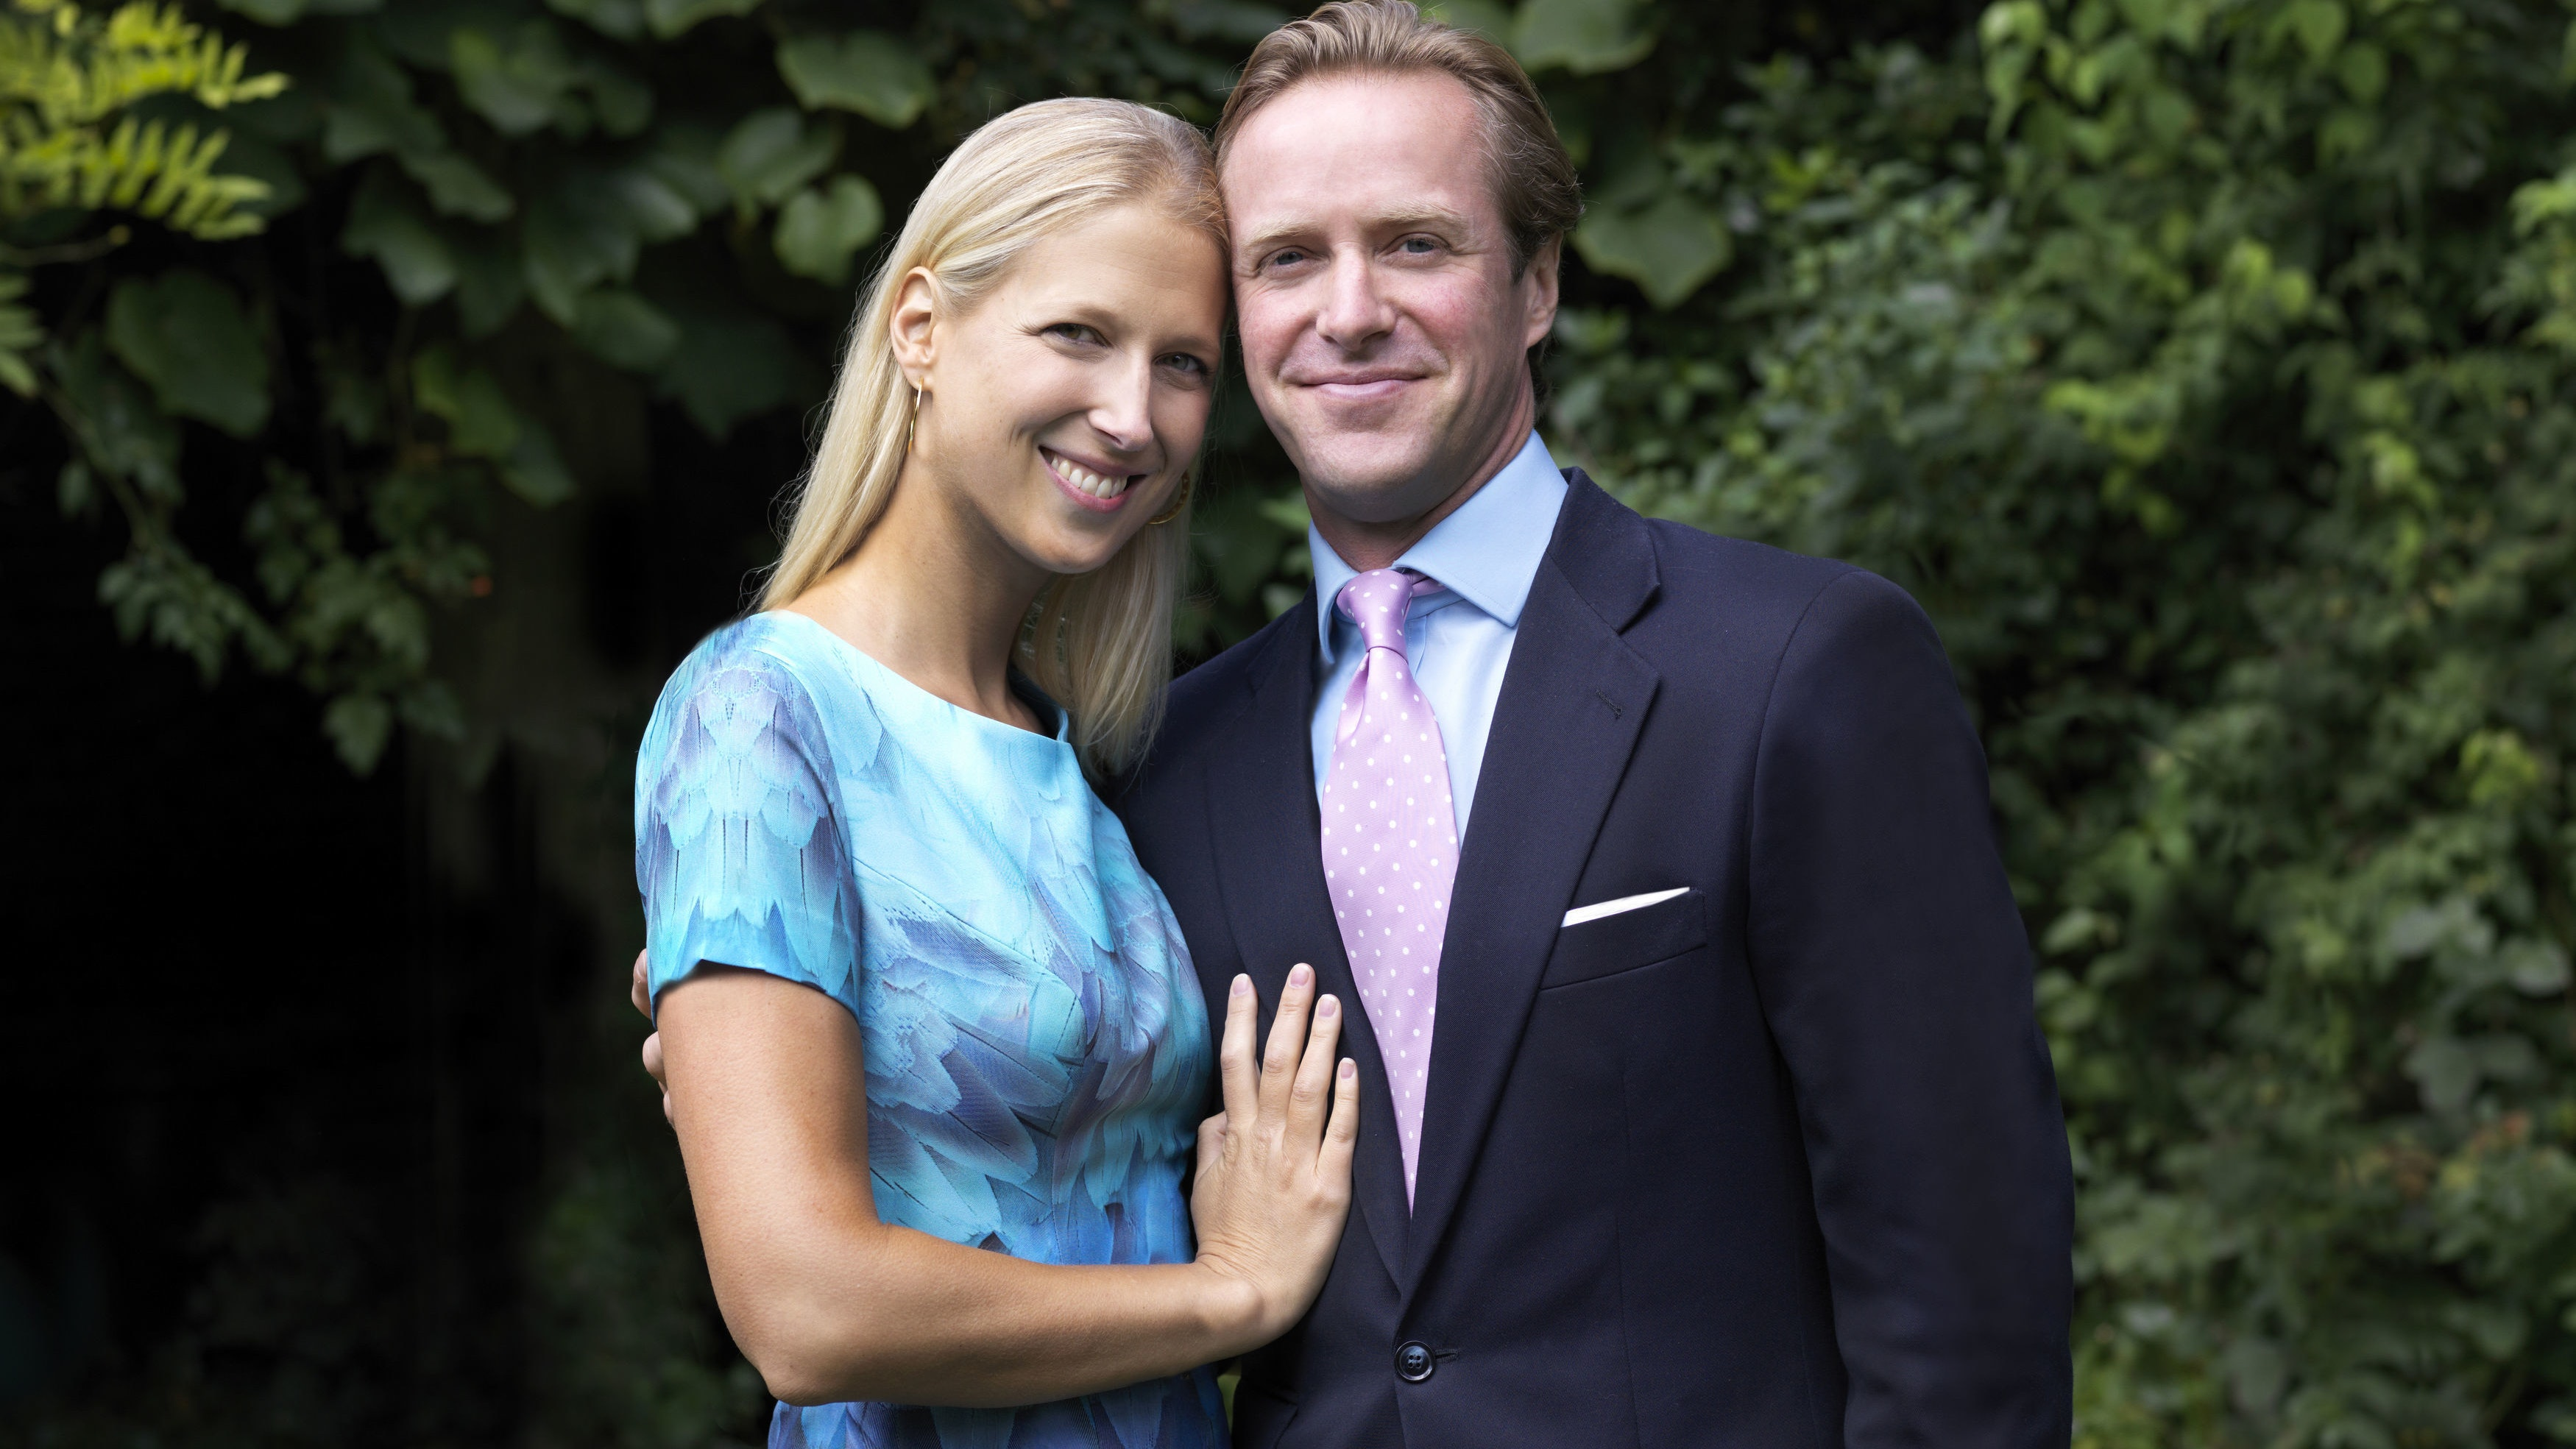 Who are Lady Gabriella Windsor and Thomas Kingston?